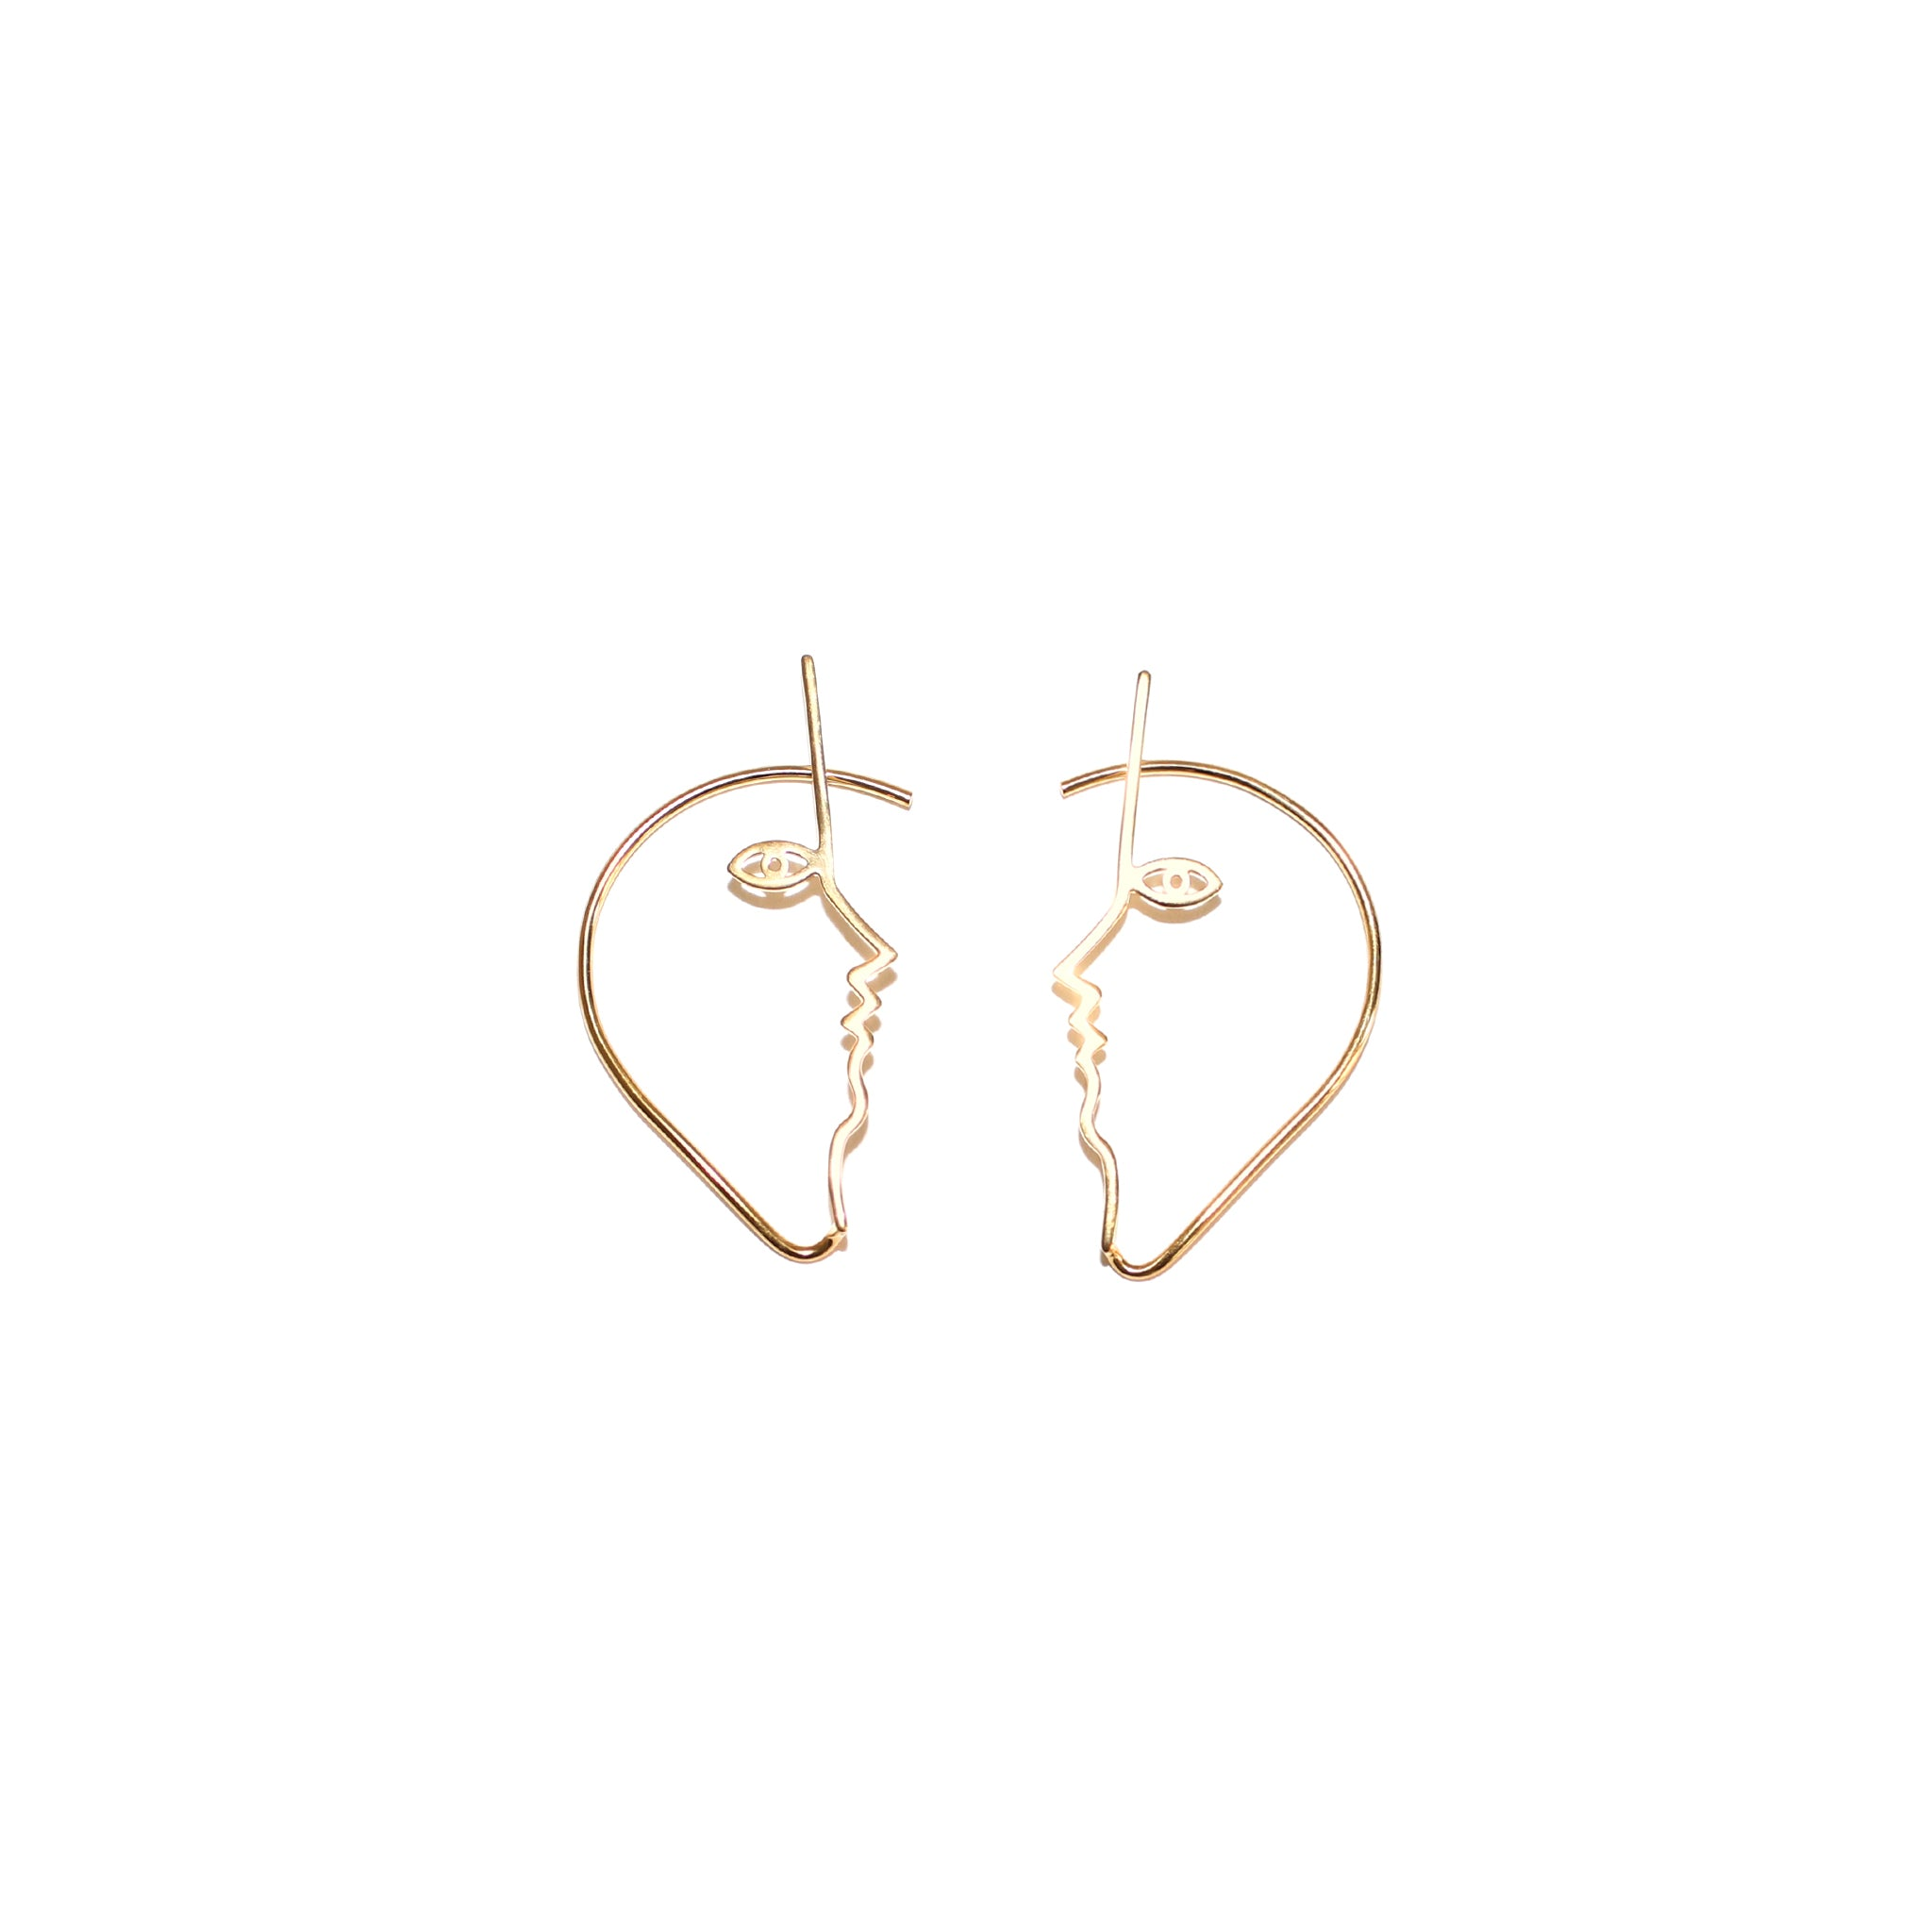 Mara Paris Dina Ear Cuffs Vermeil on Well(un)known Accessories available on Wellunknown.com